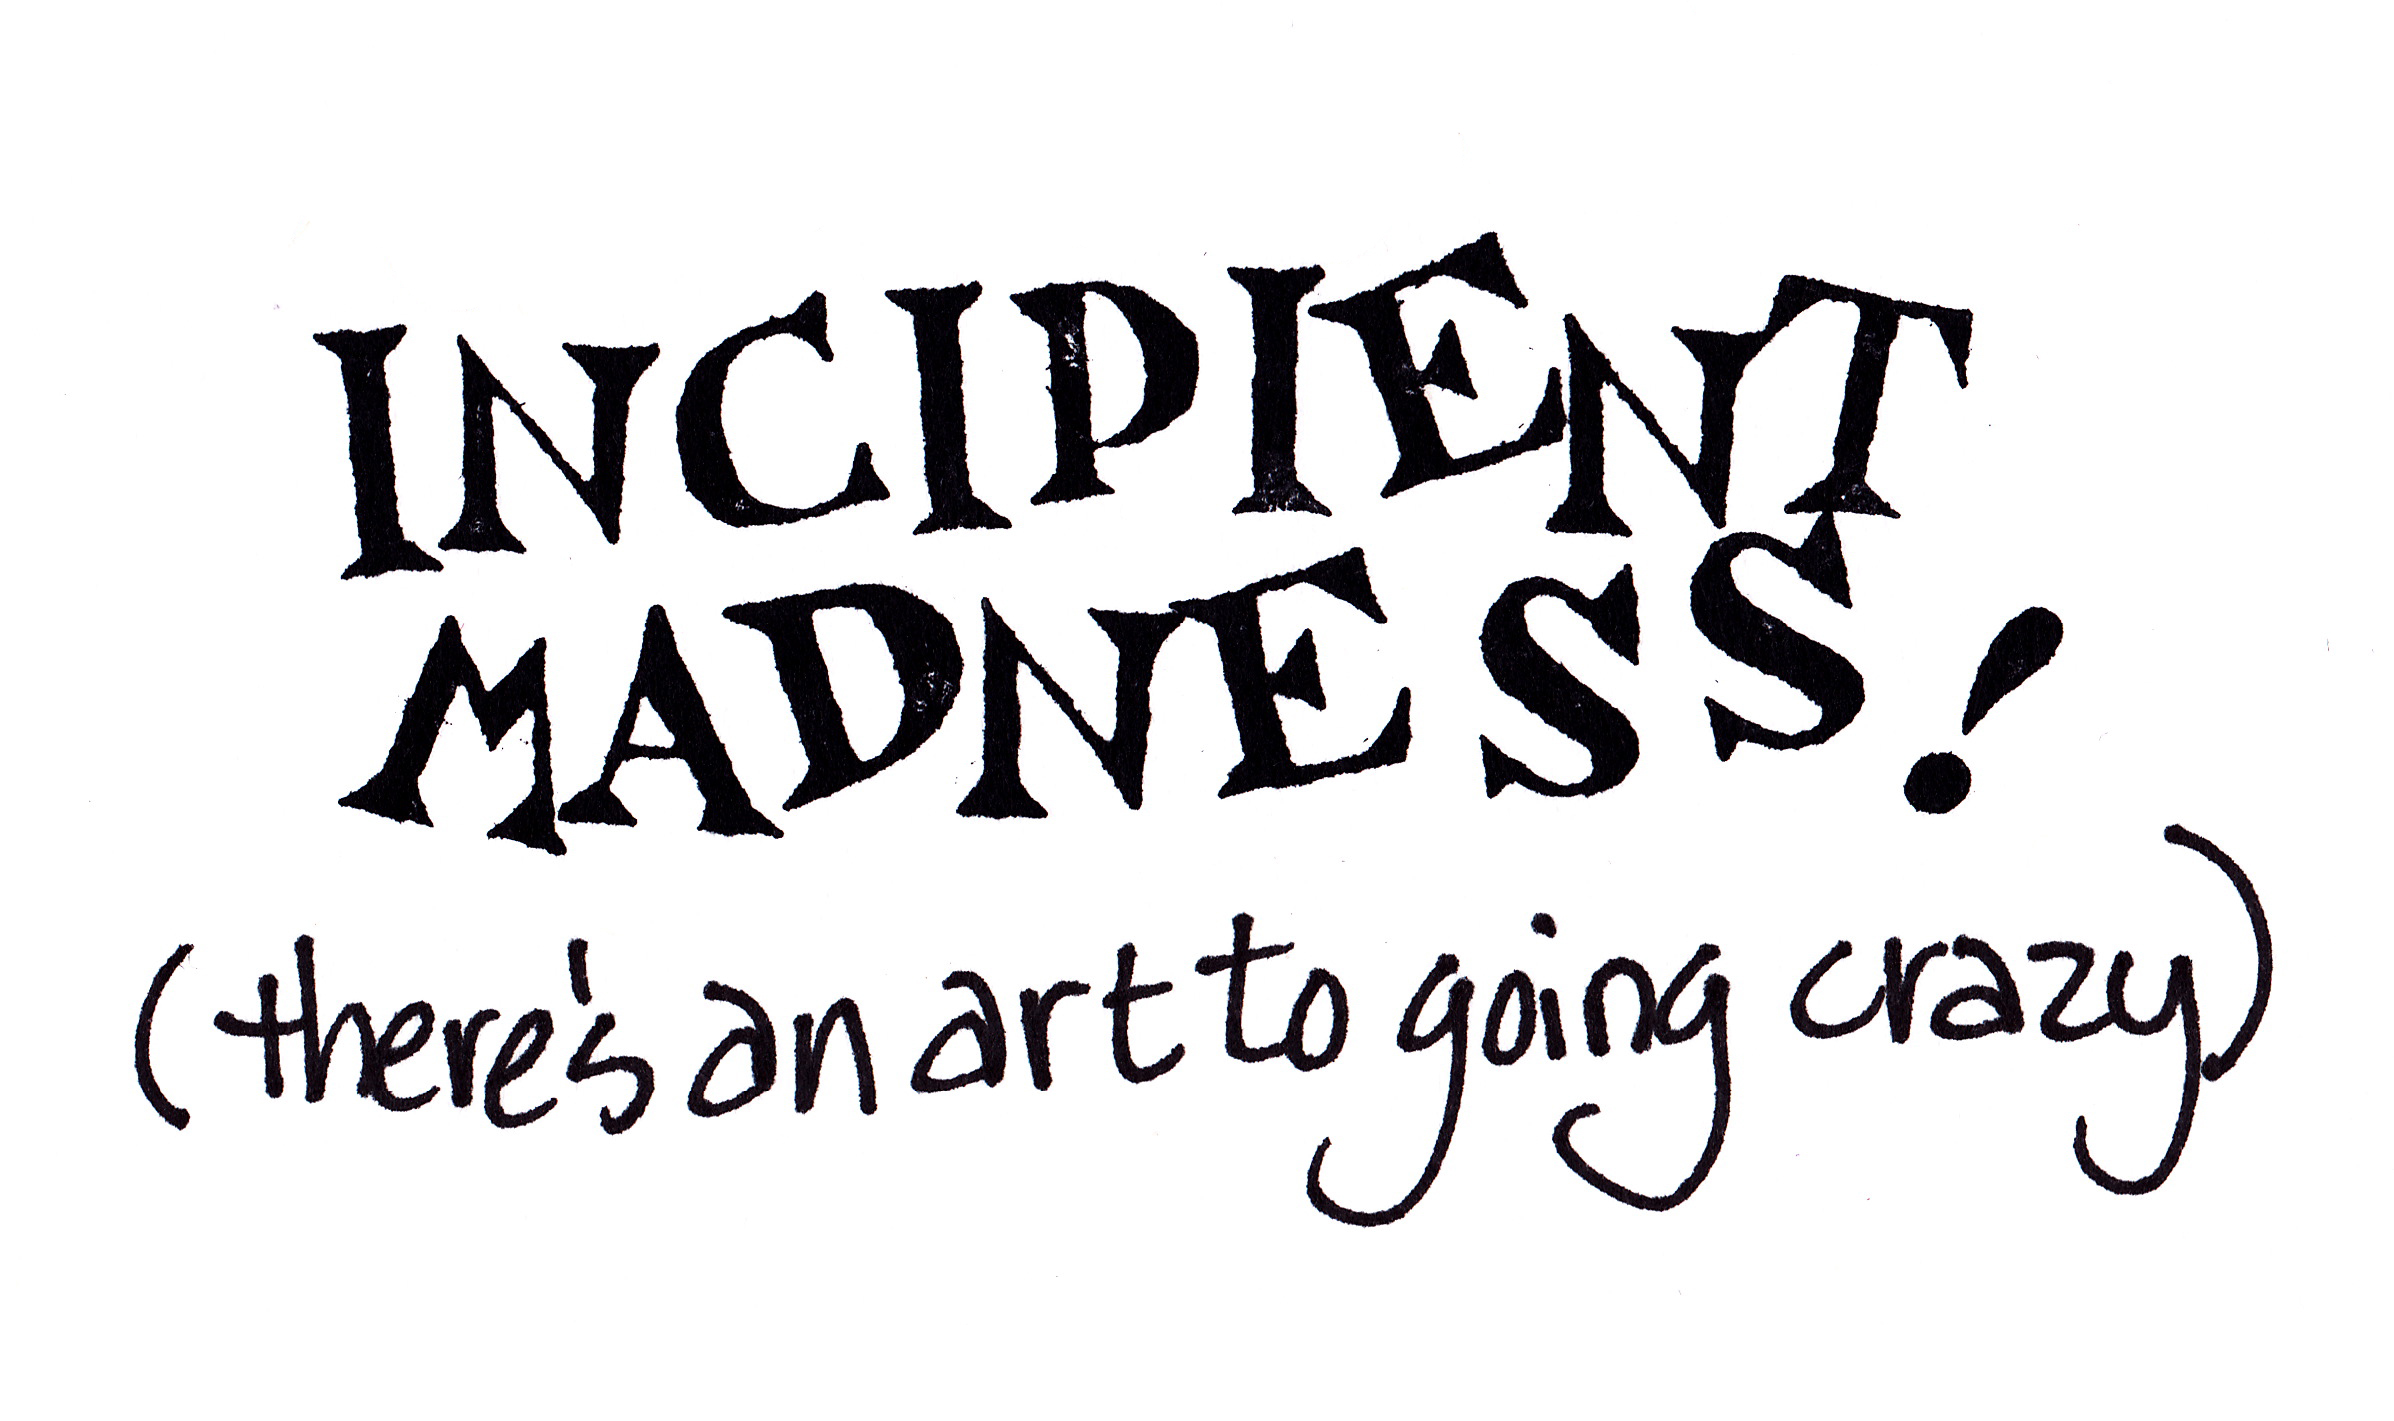 Incipient Madness (there's an art to going crazy)